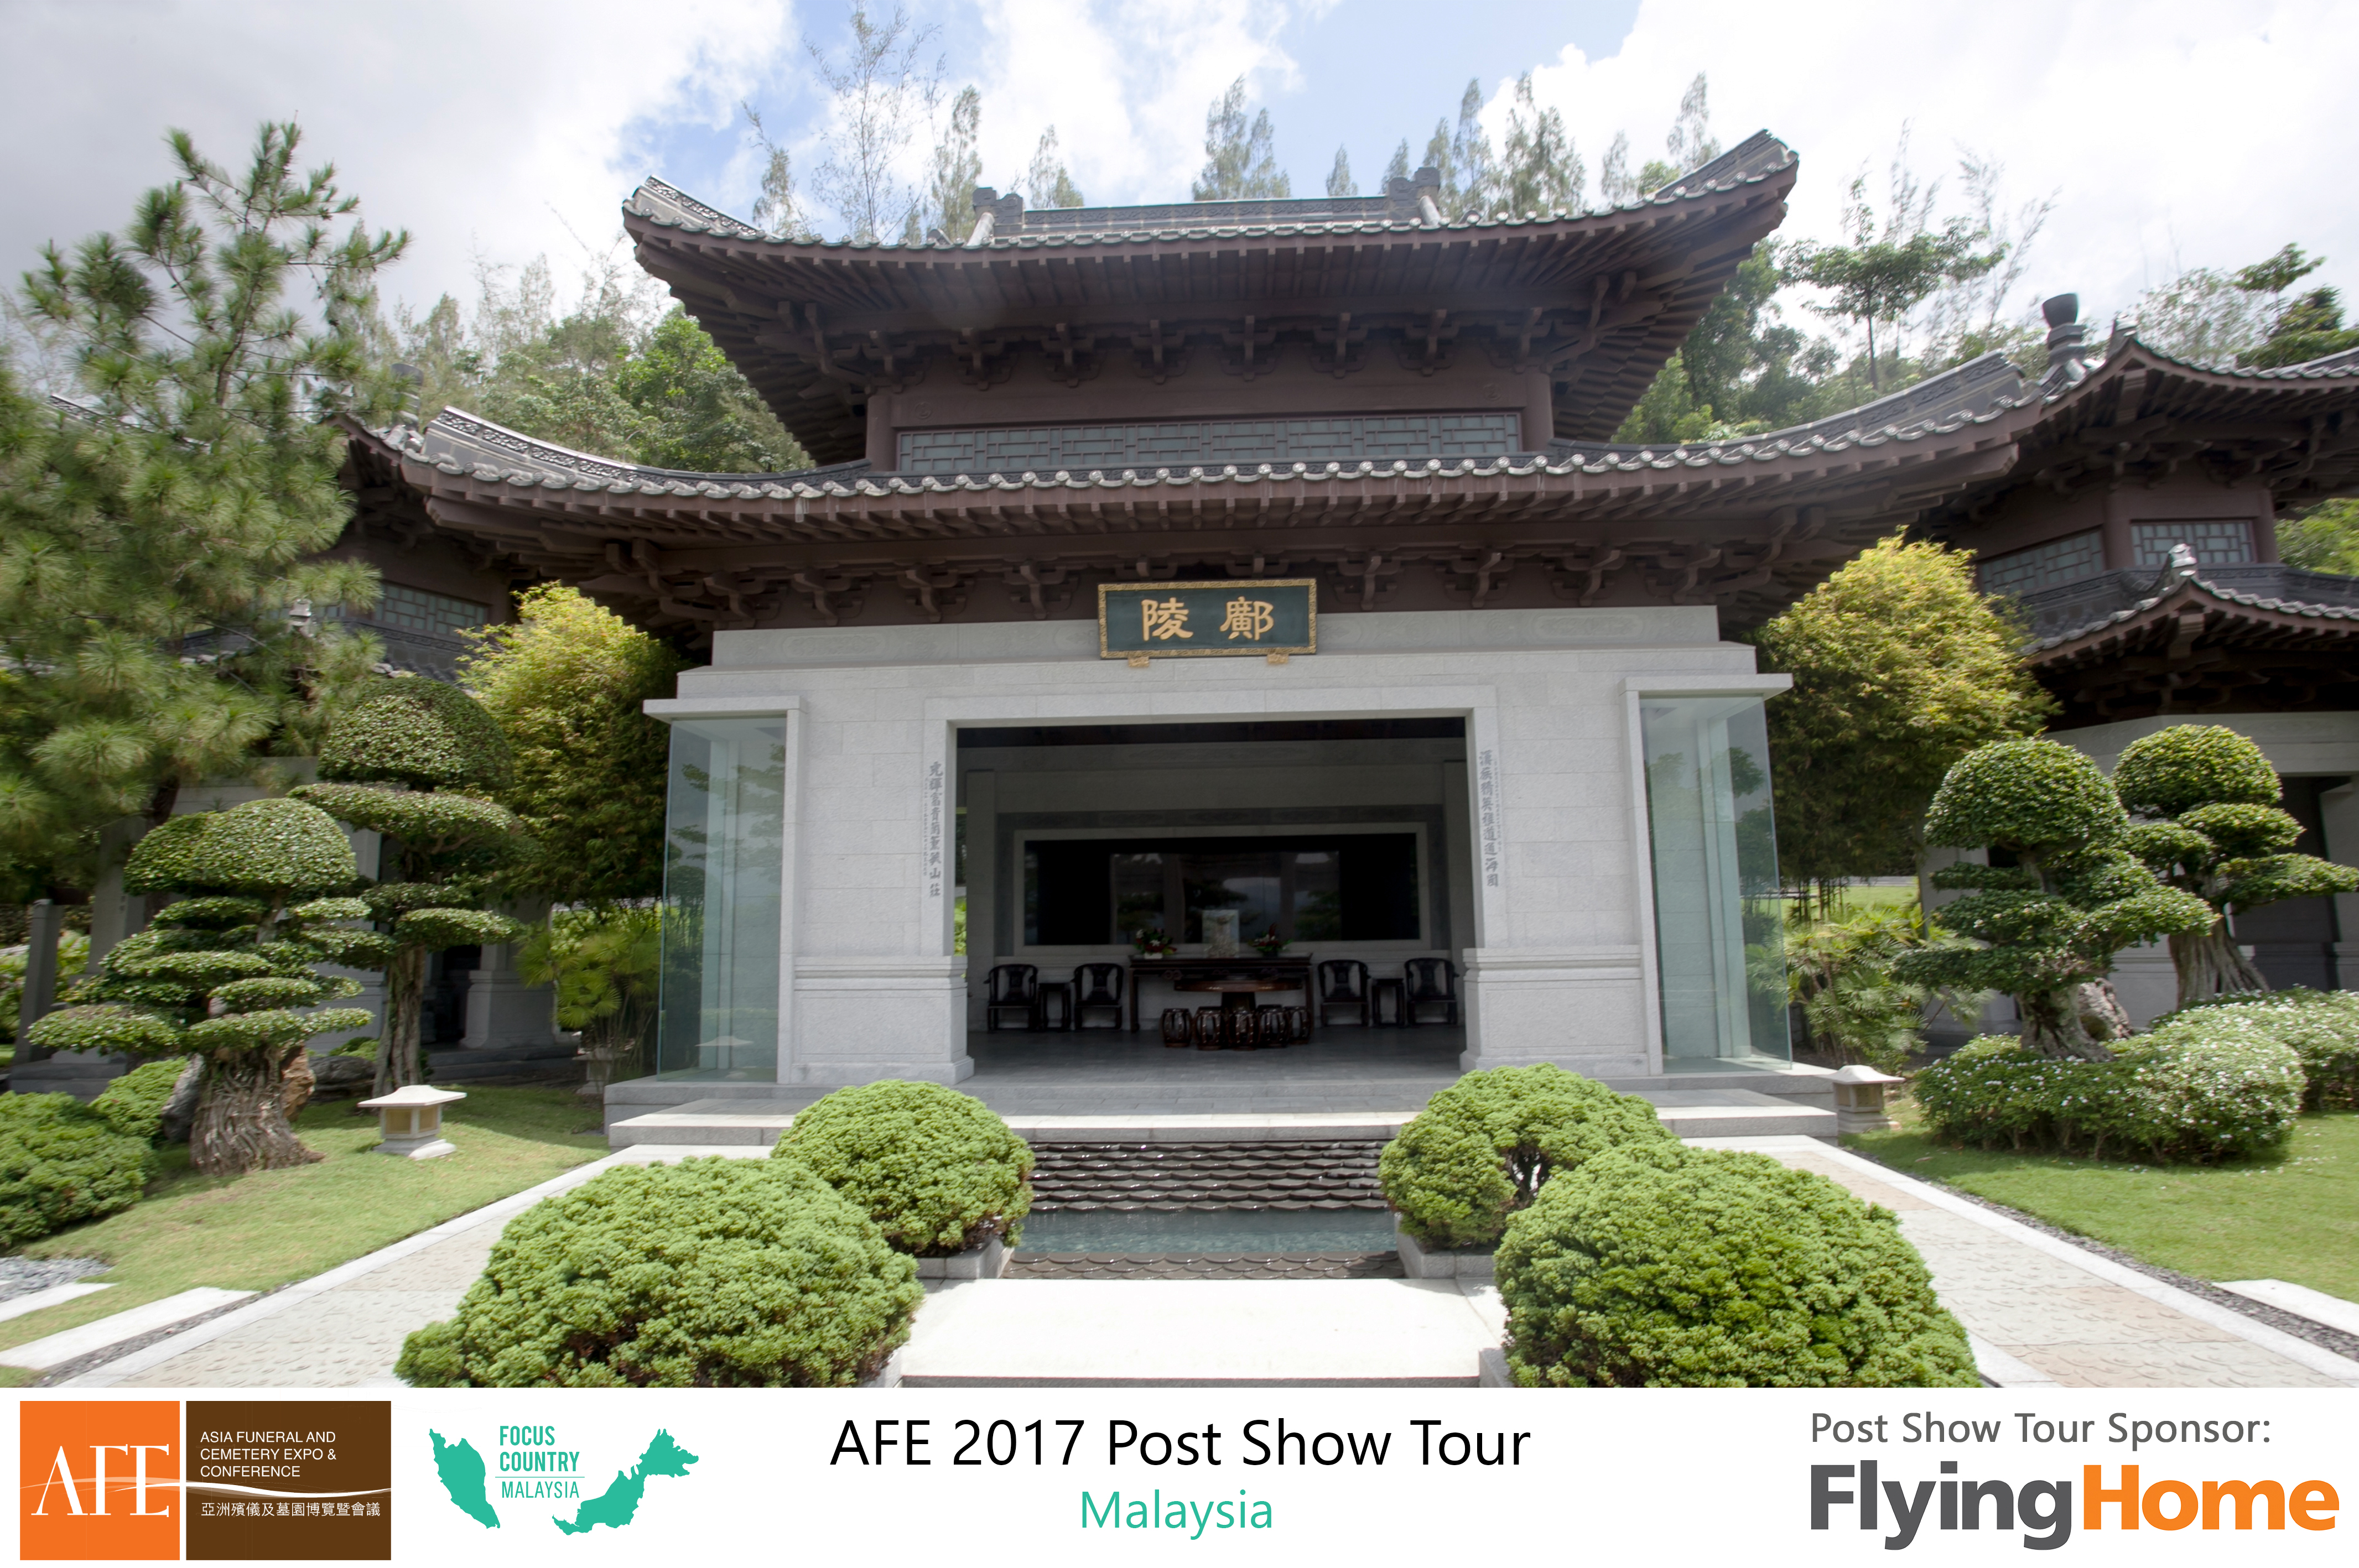 AFE Post Show Tour 2017 Day 2 - 64